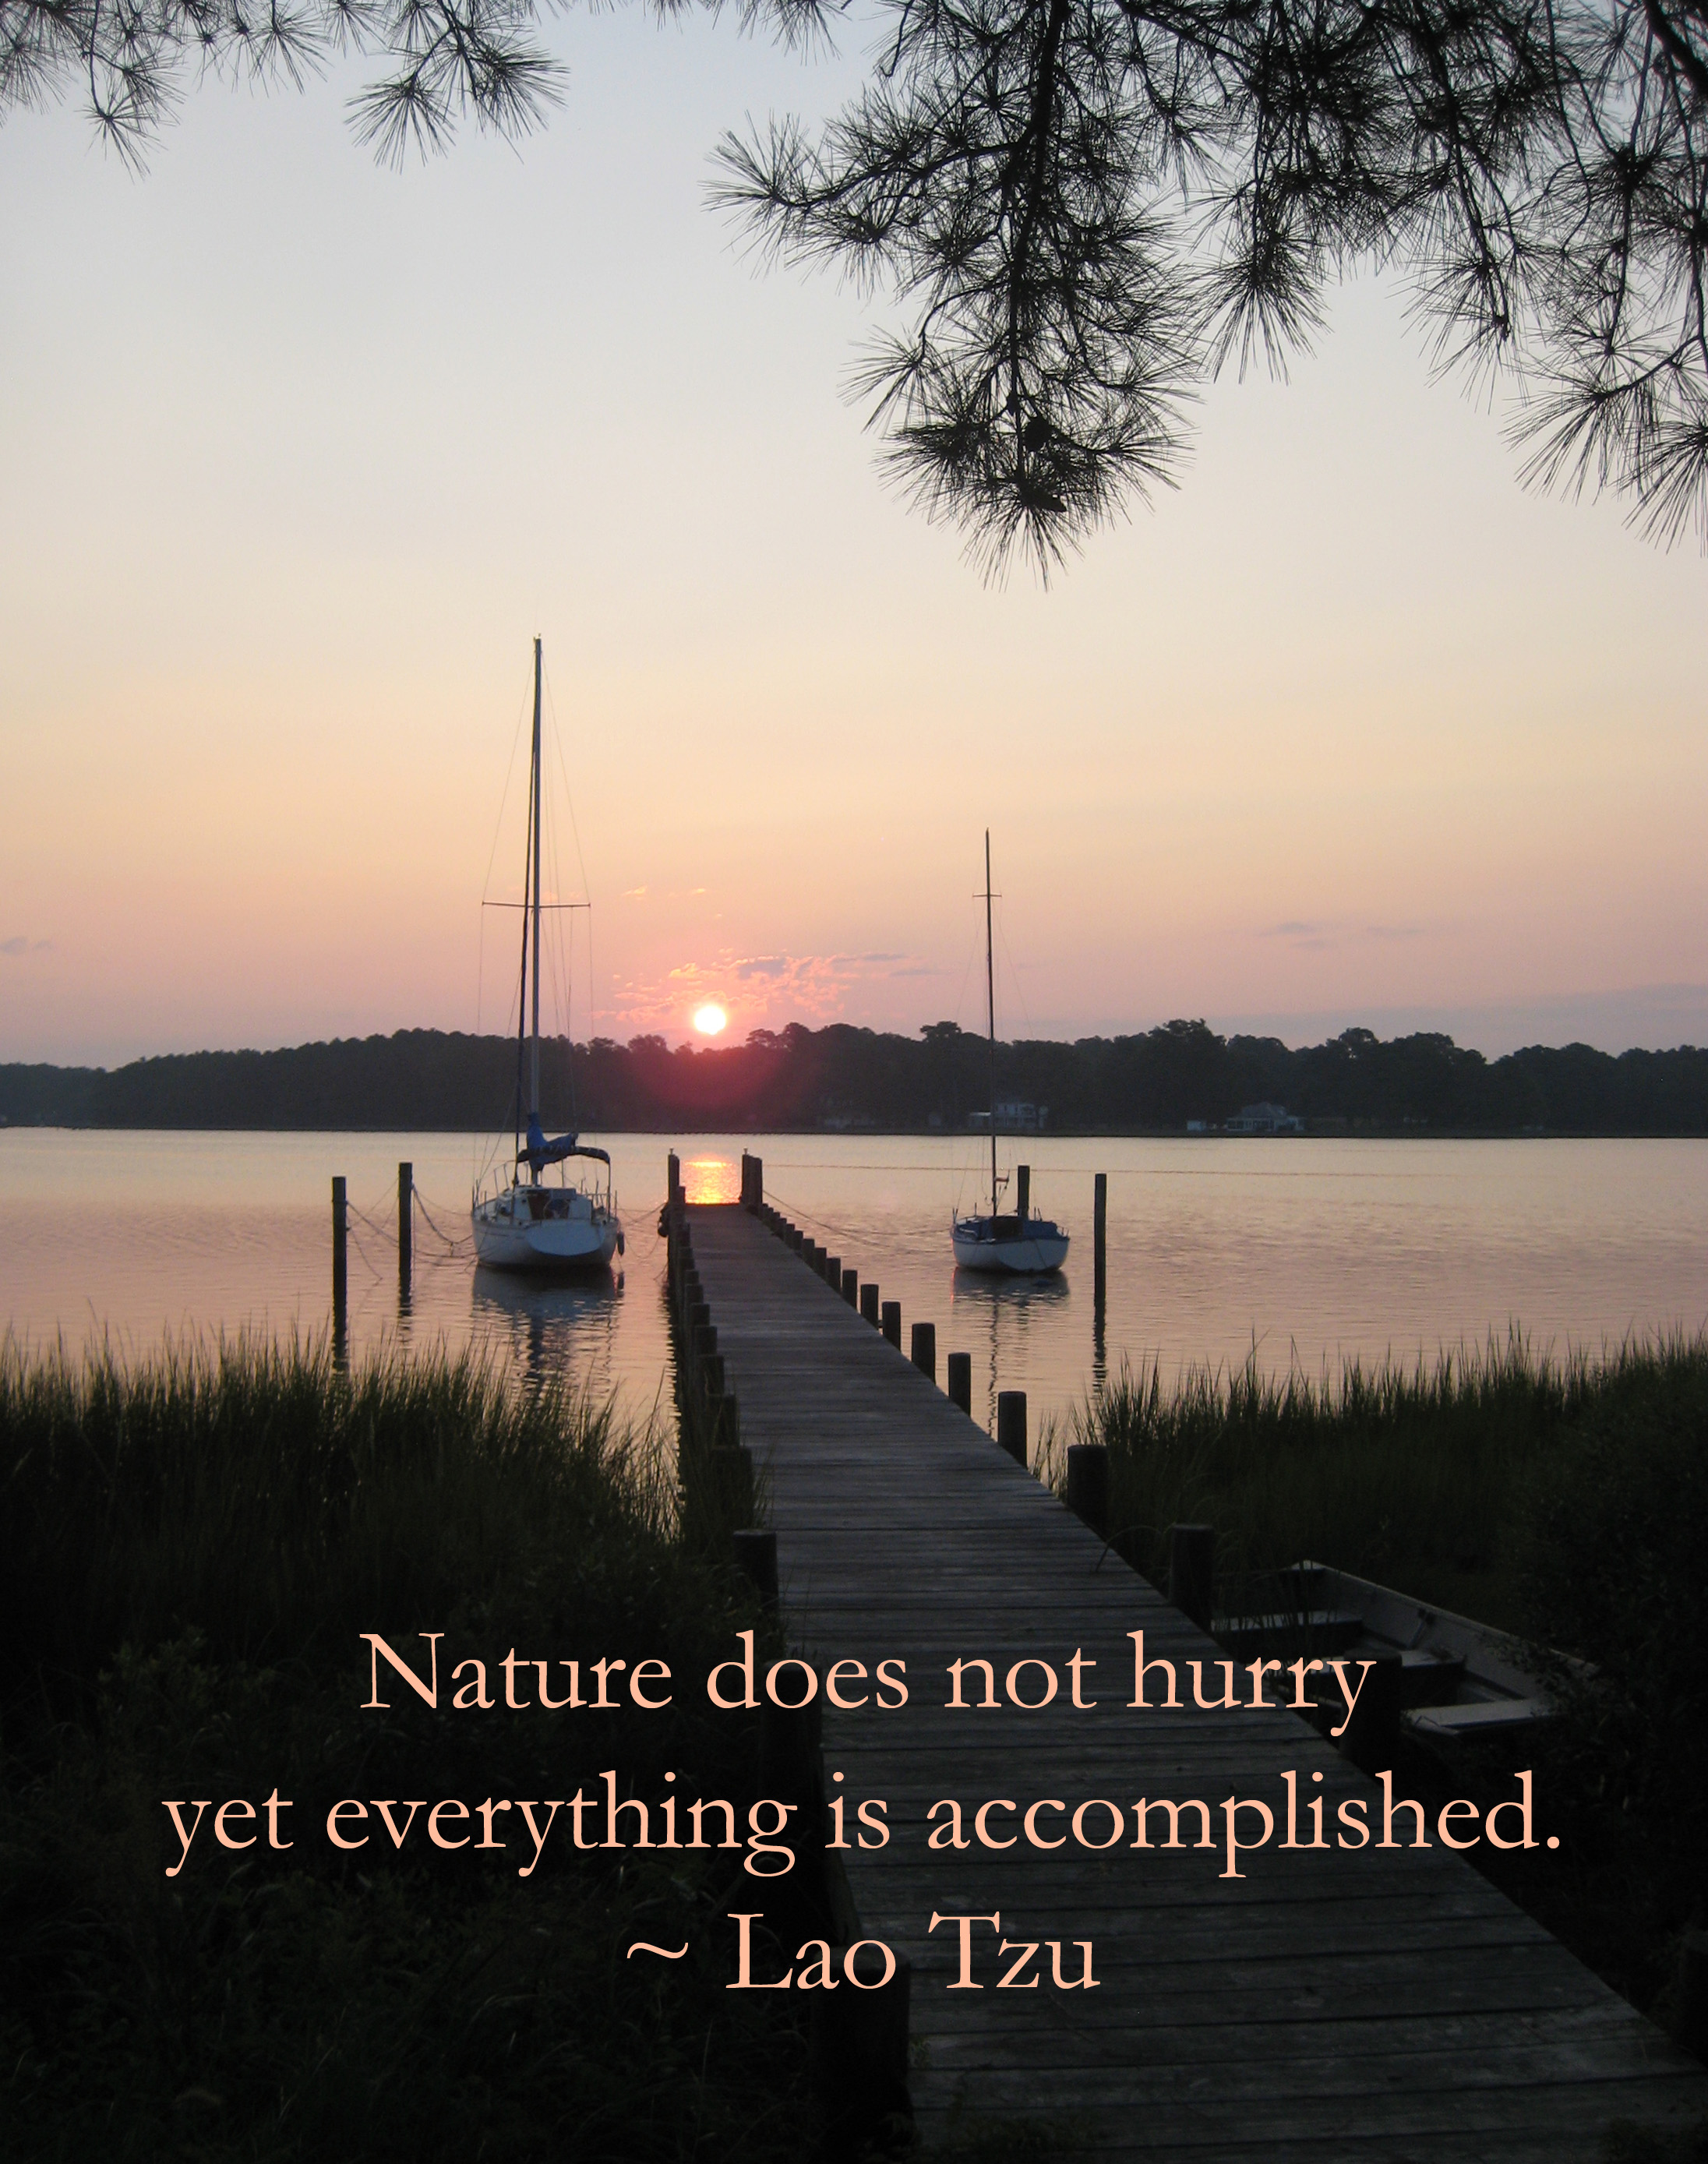 inspirational quotes about nature quotesgram